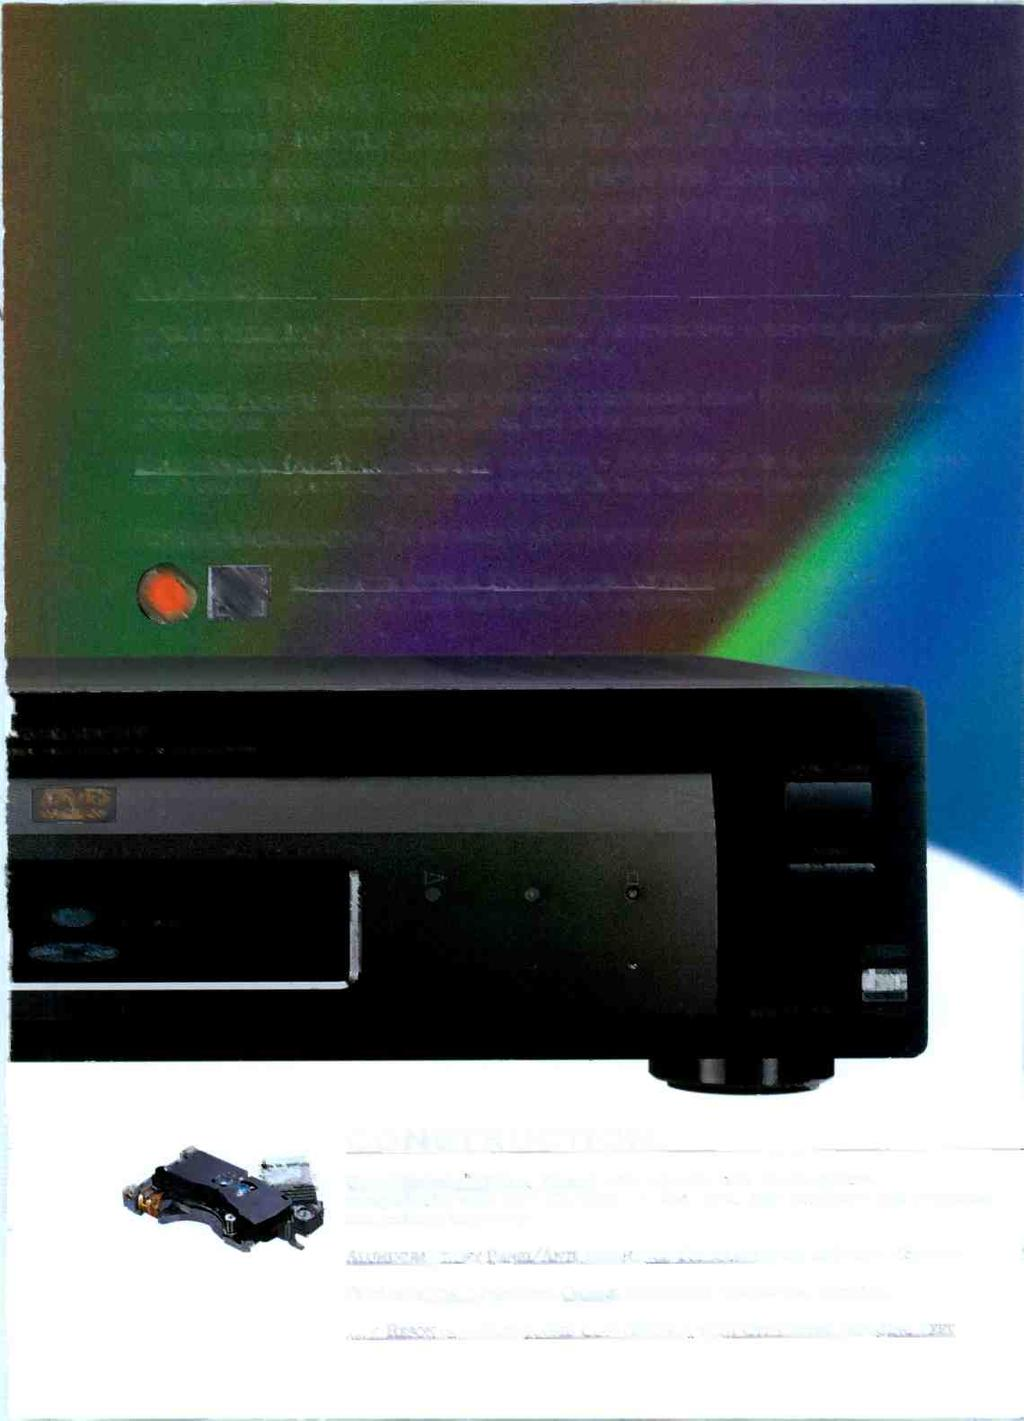 THE SONY DVP-S7000 INCORPORATES EXCLUSIVE TECHNOLOGY AND FEATURES THAT PROVIDE DEFINITIVE DVD AND CD PERFORMANCE.